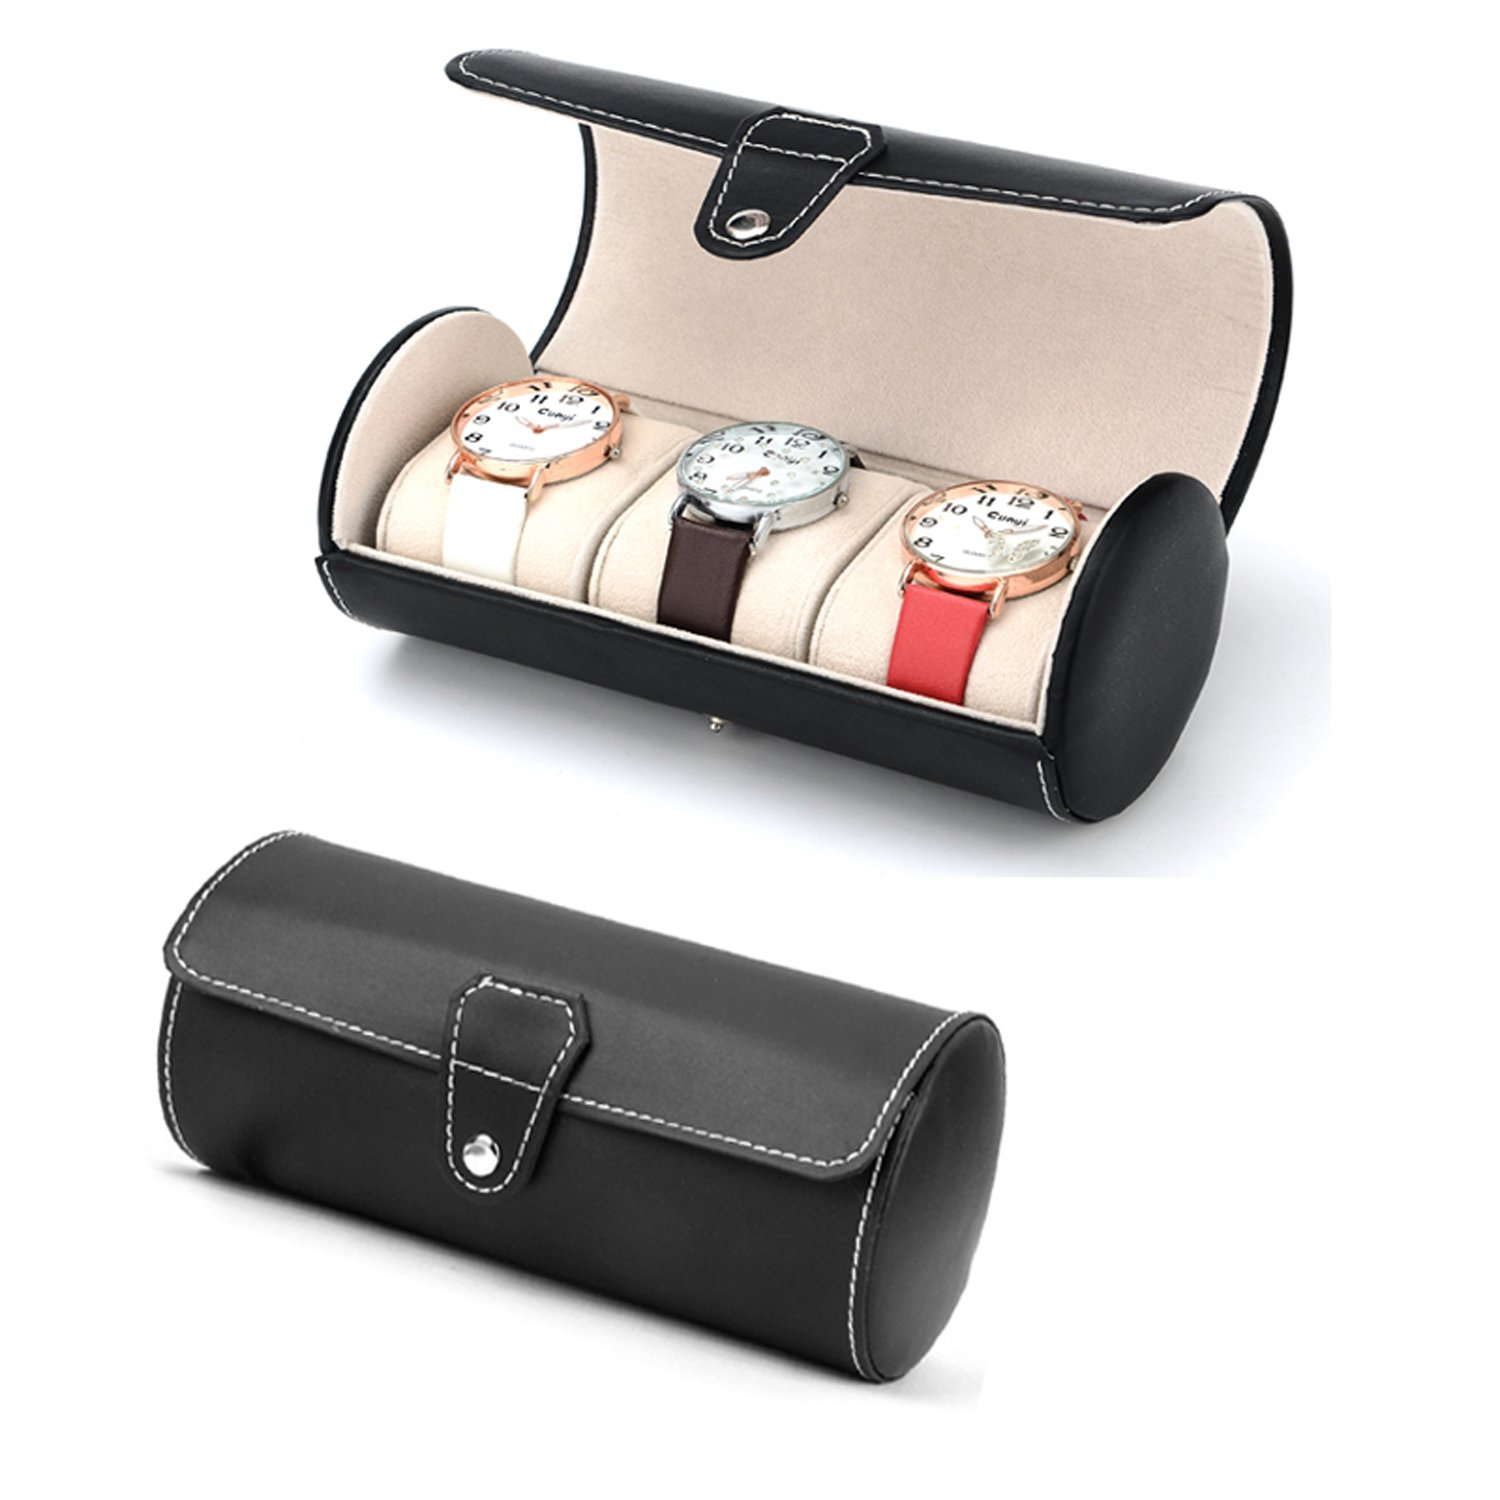 Autoark Leather Roll Traveler's Watch Storage Organizer for 3 Watch and/or Bracelets (Black),AW-006